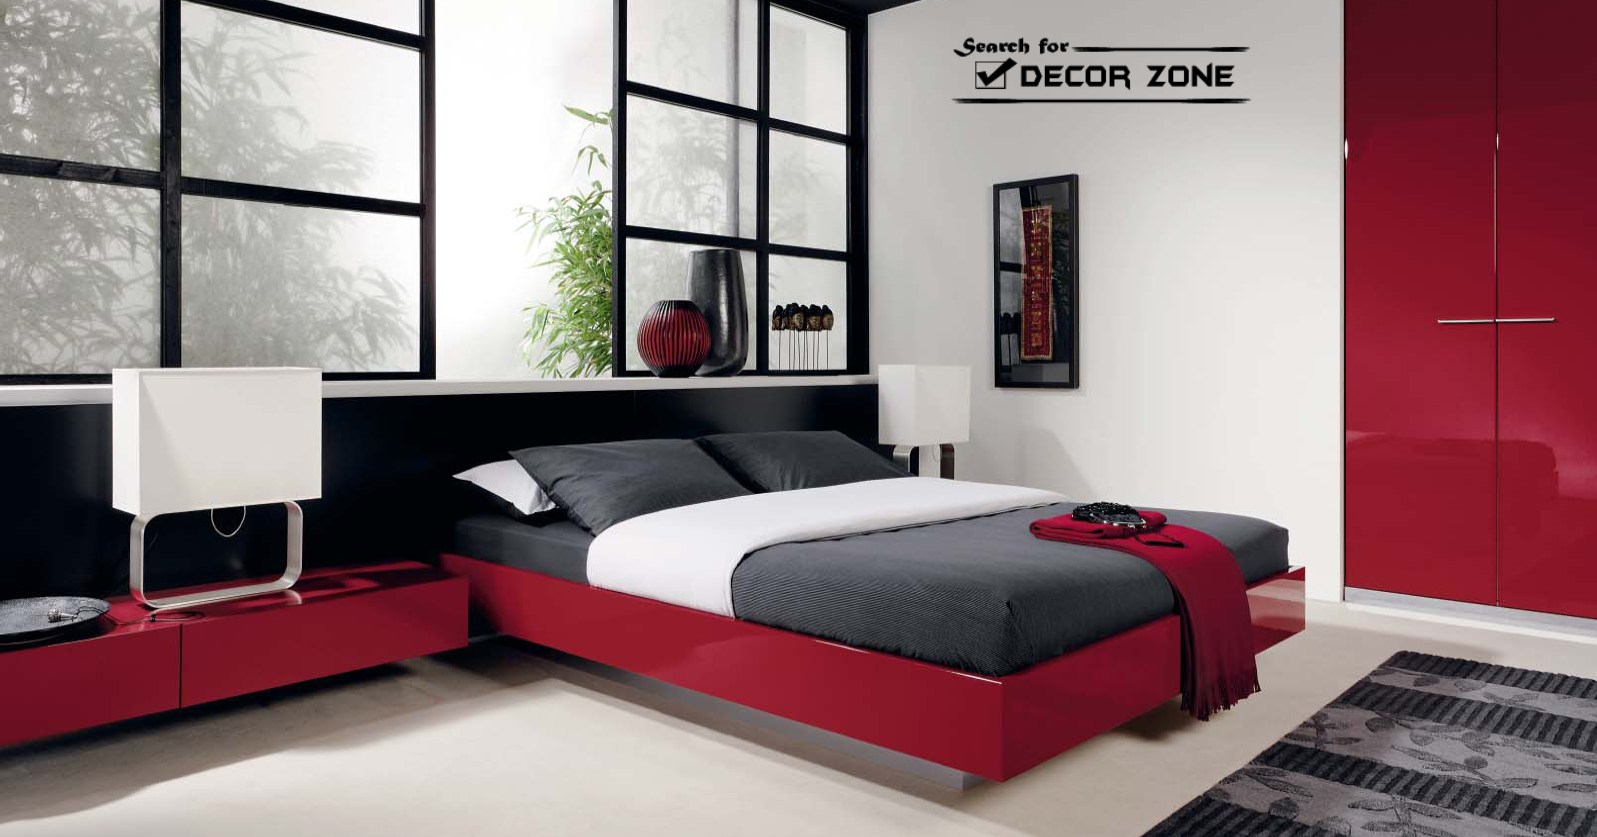 Modern bedroom furniture sets - 20 ideas and designs